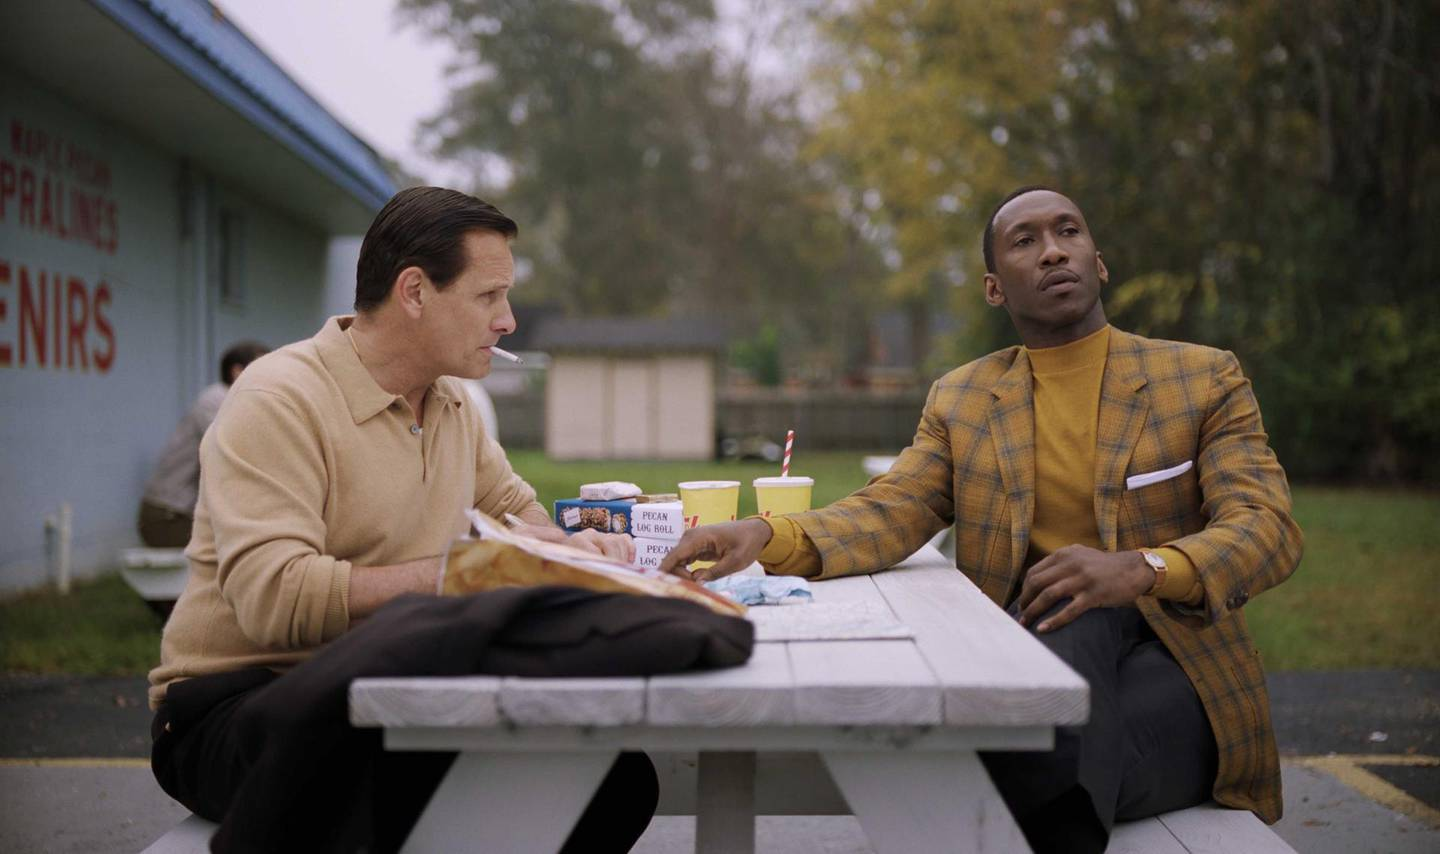 """Viggo Mortensen as Tony Vallelonga and Mahershala Ali as Dr. Donald Shirley in """"Green Book,"""" directed by Peter Farrelly. Photo Credit: Universal Pictures"""